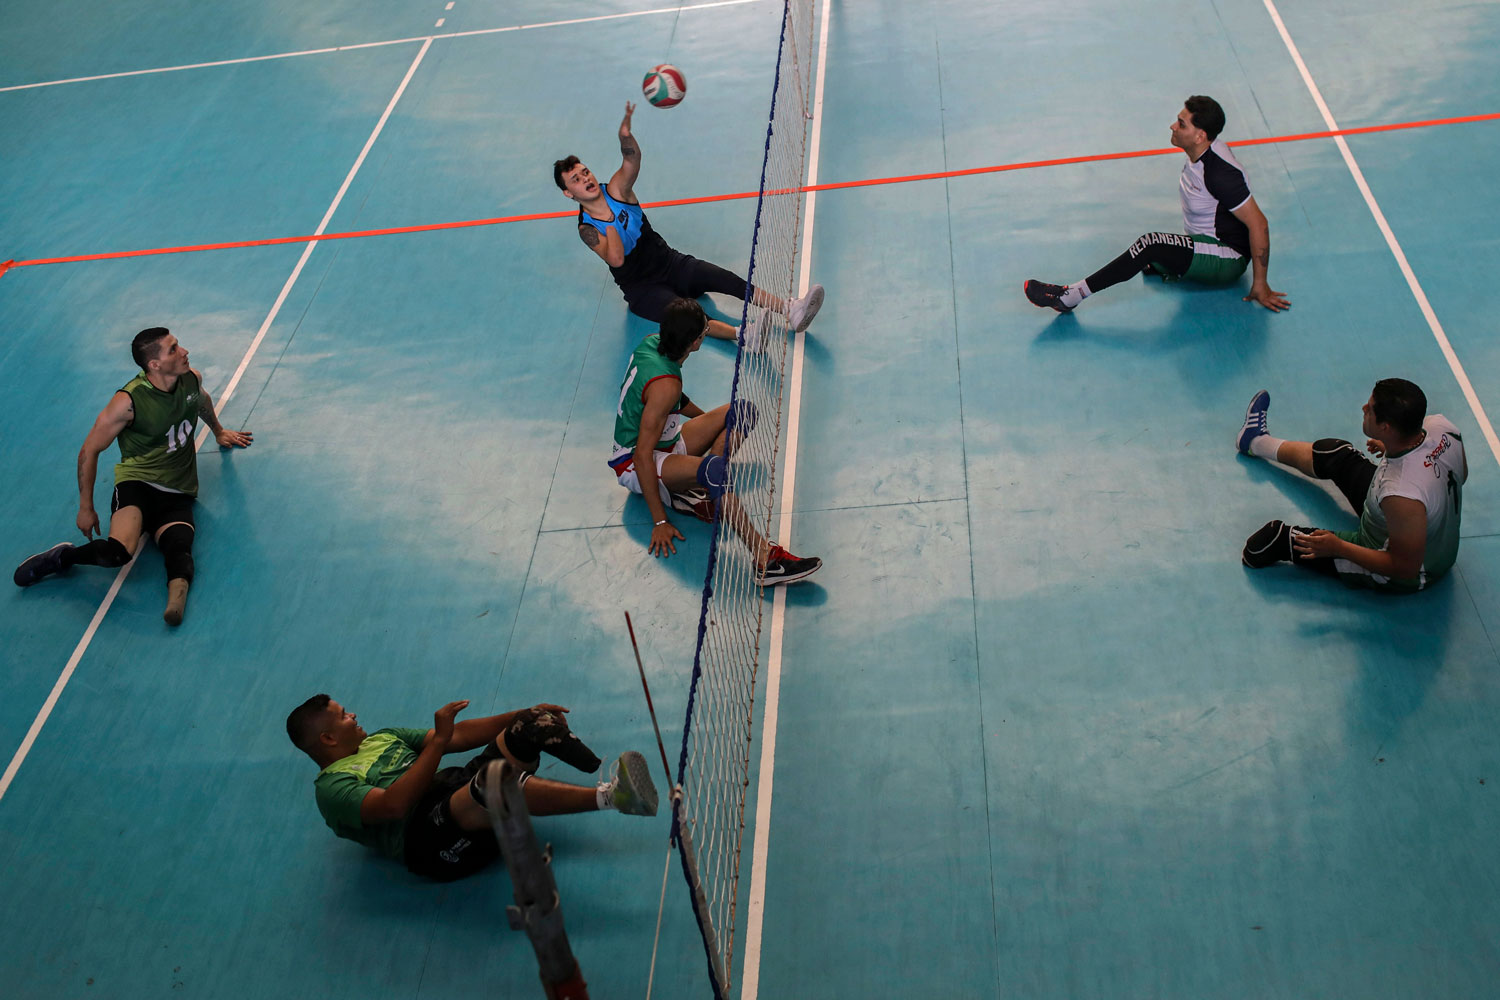 Colombian Army veterans and land-mine victims practice with Antioquia province's sitting volleyball team on April 4 in Medellin, Colombia, during International Mine Awareness Day. According to Colombian President Juan Manuel Santos, 22 people were victims of land mines in the past year, and more than 11,500 since 1990 in the country. (Joaquin Sarmiento/AFP/Getty Images)